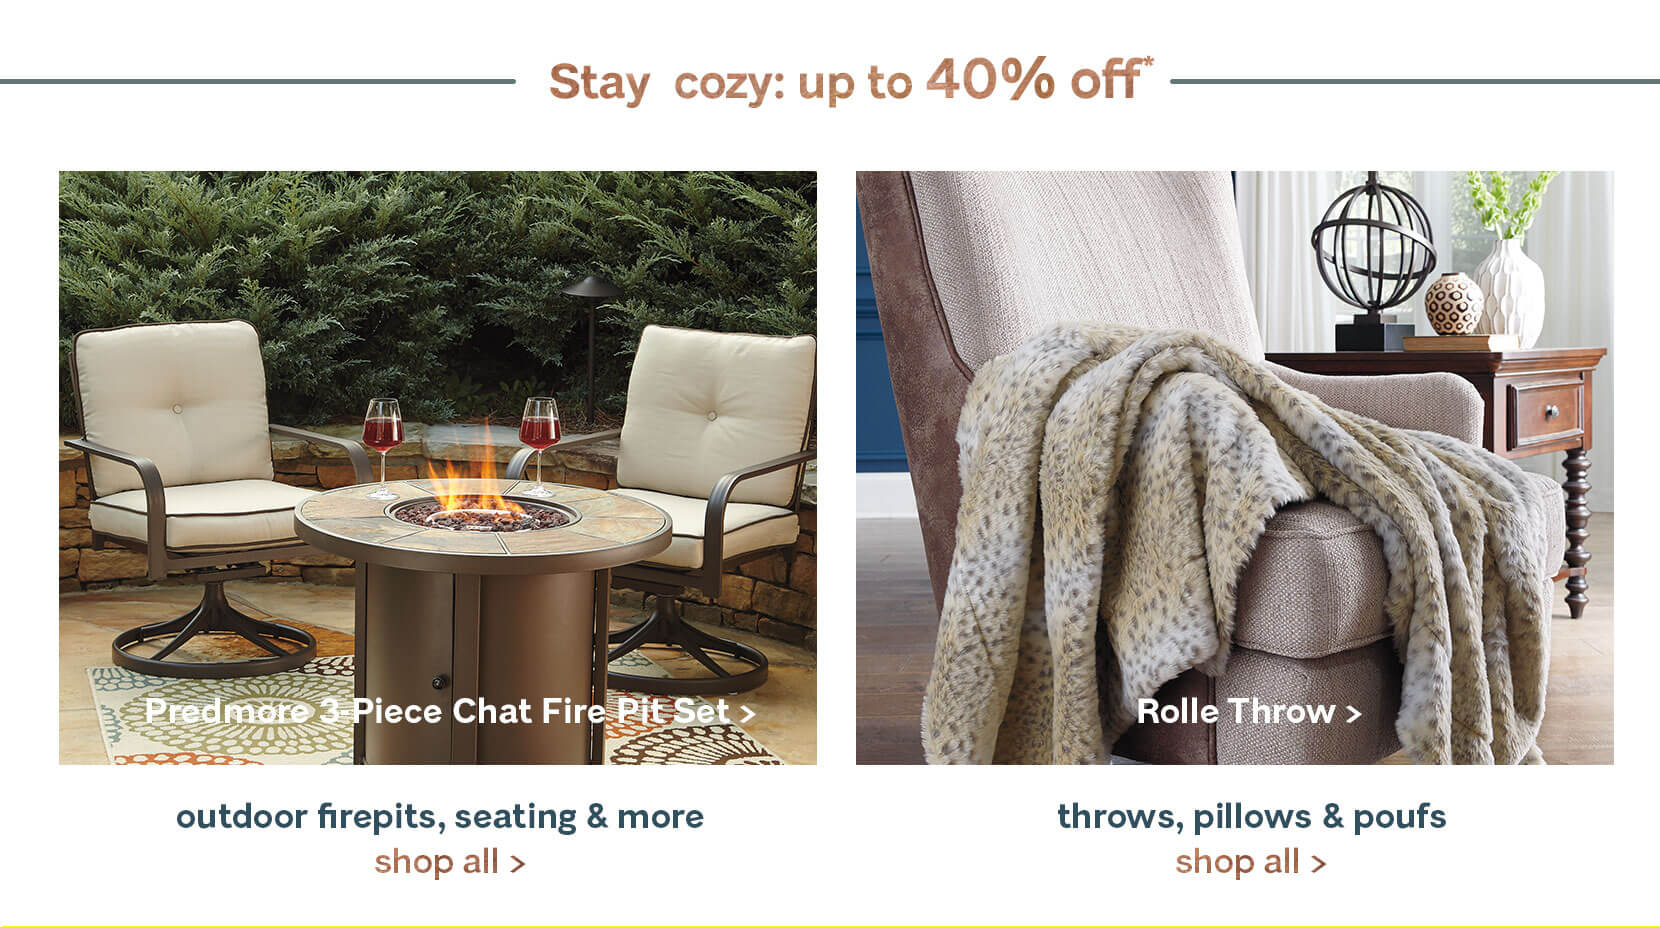 Cozy Furniture Indoor or Outdoor. Ashley Furniture HomeStore   Home Furniture   Decor   Ashley